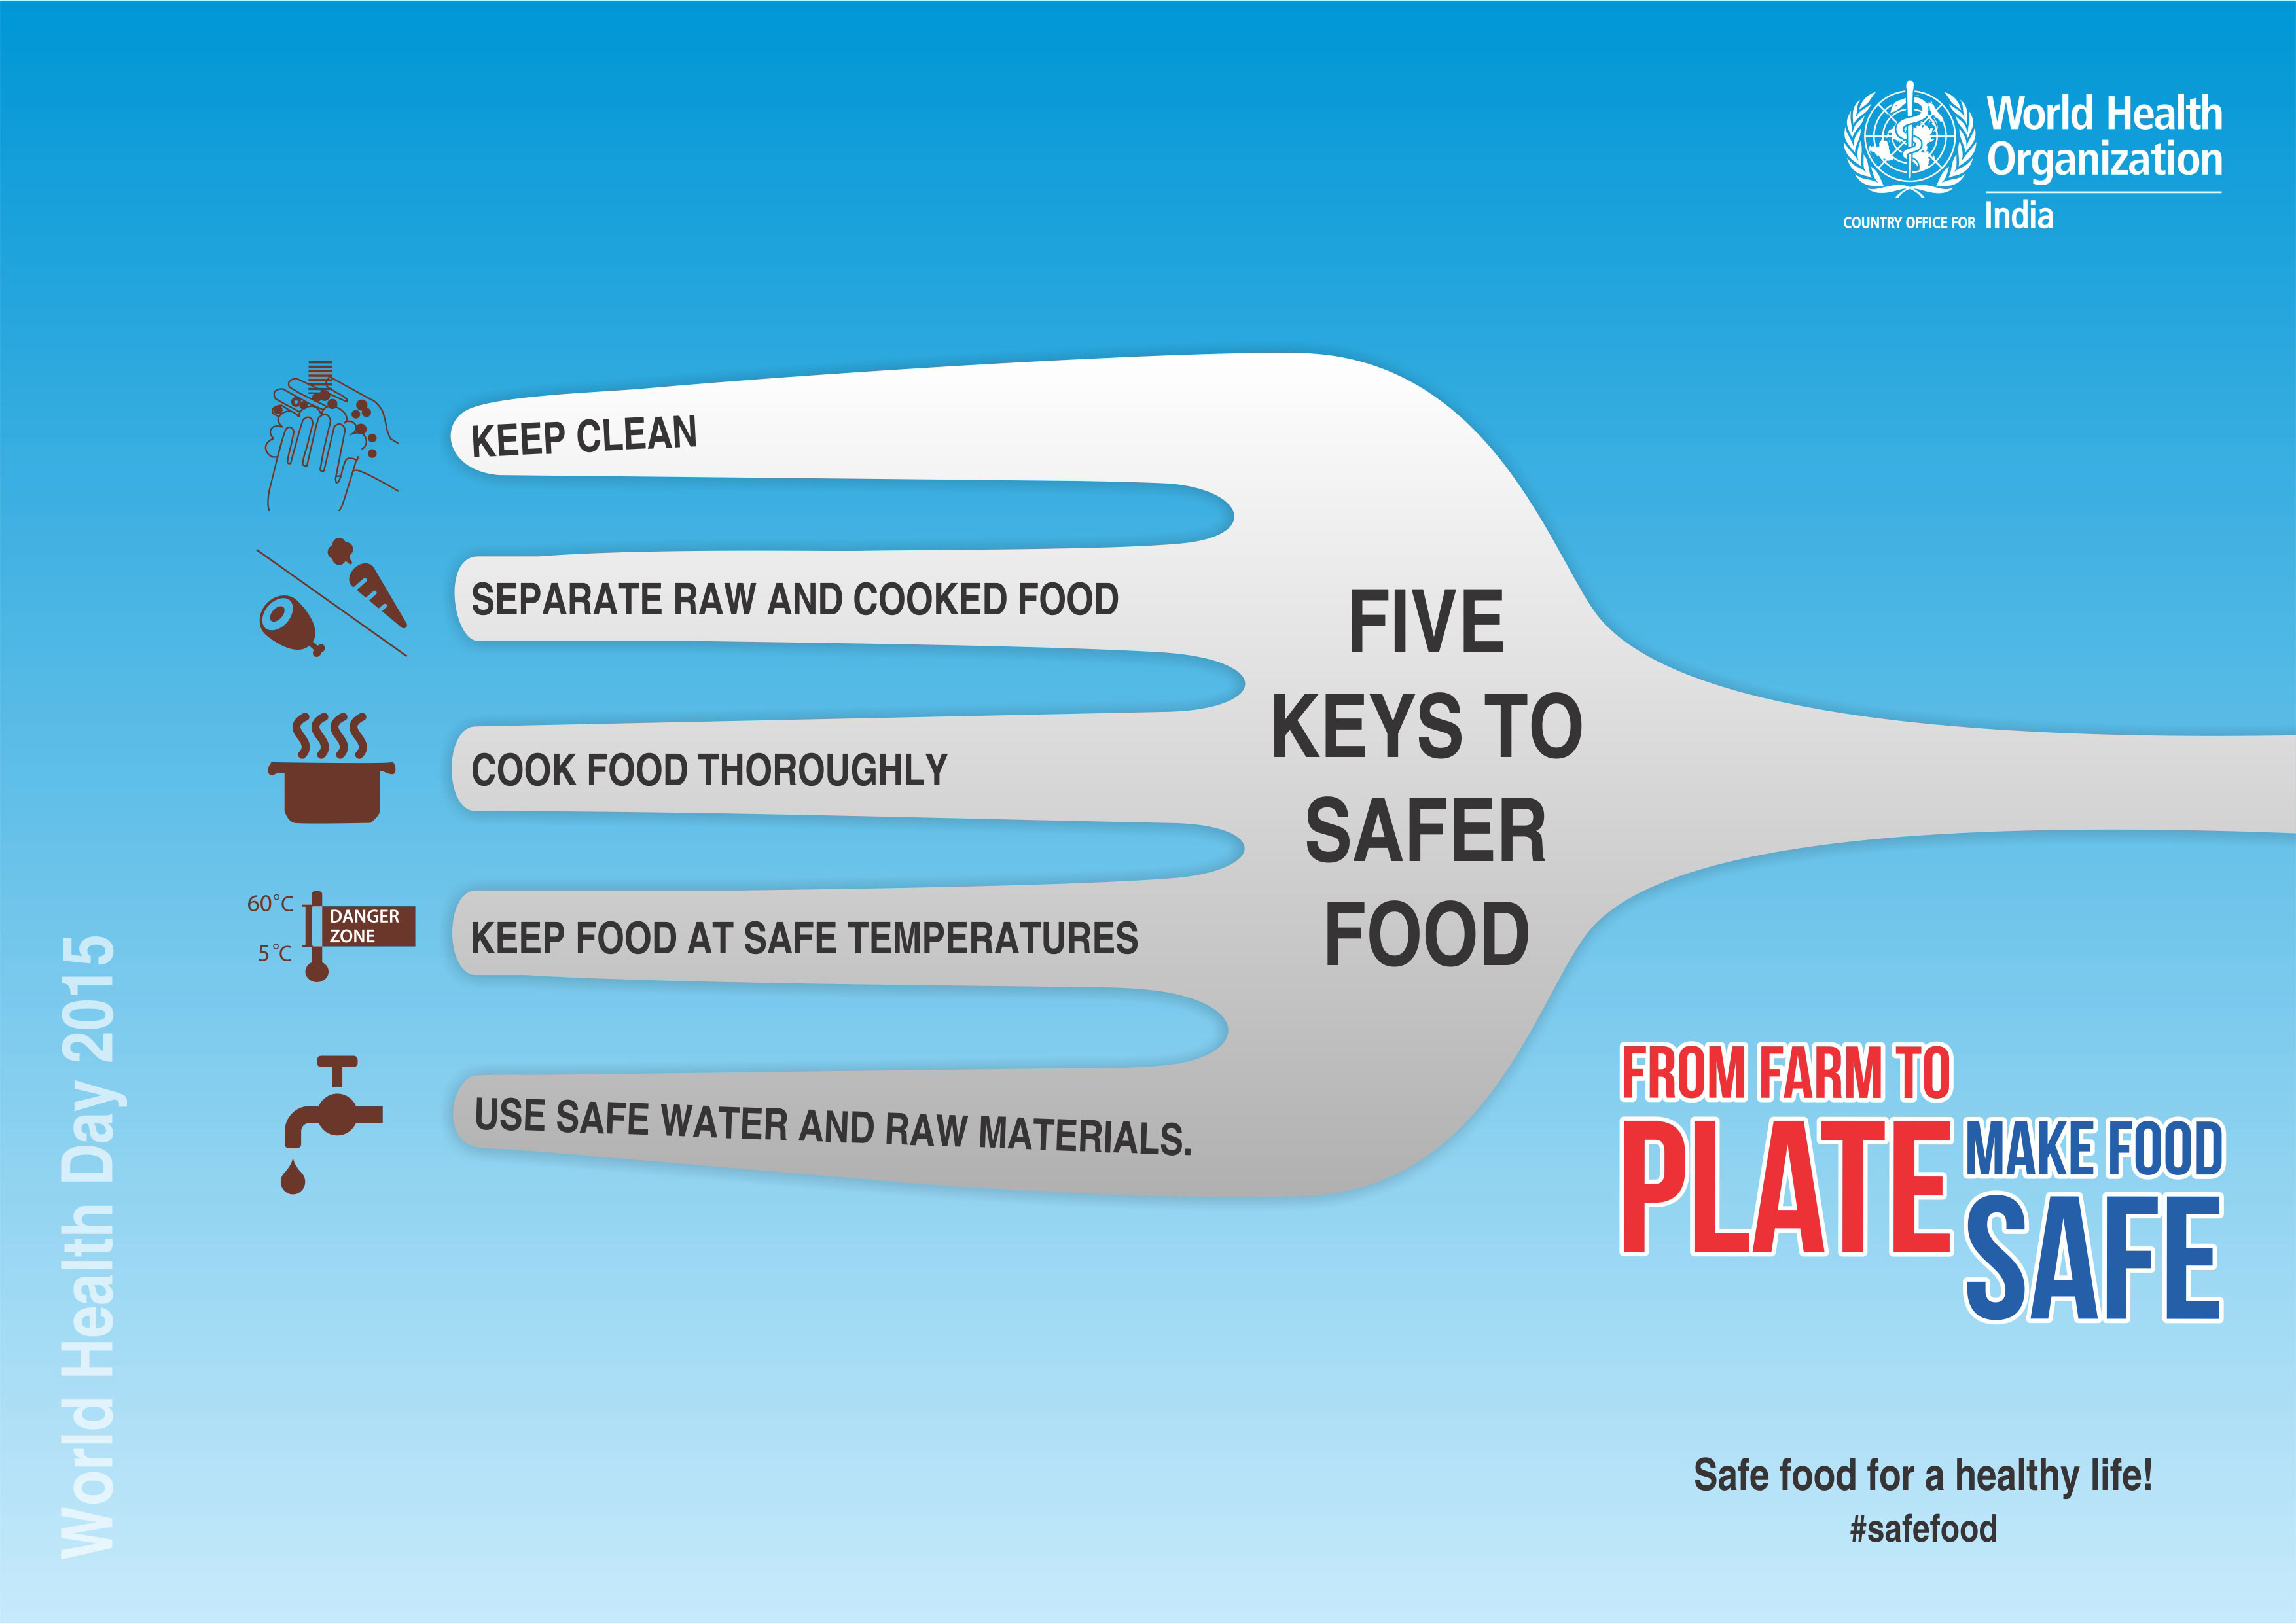 Poster 10: From Farm to Plate - Make Food Safe